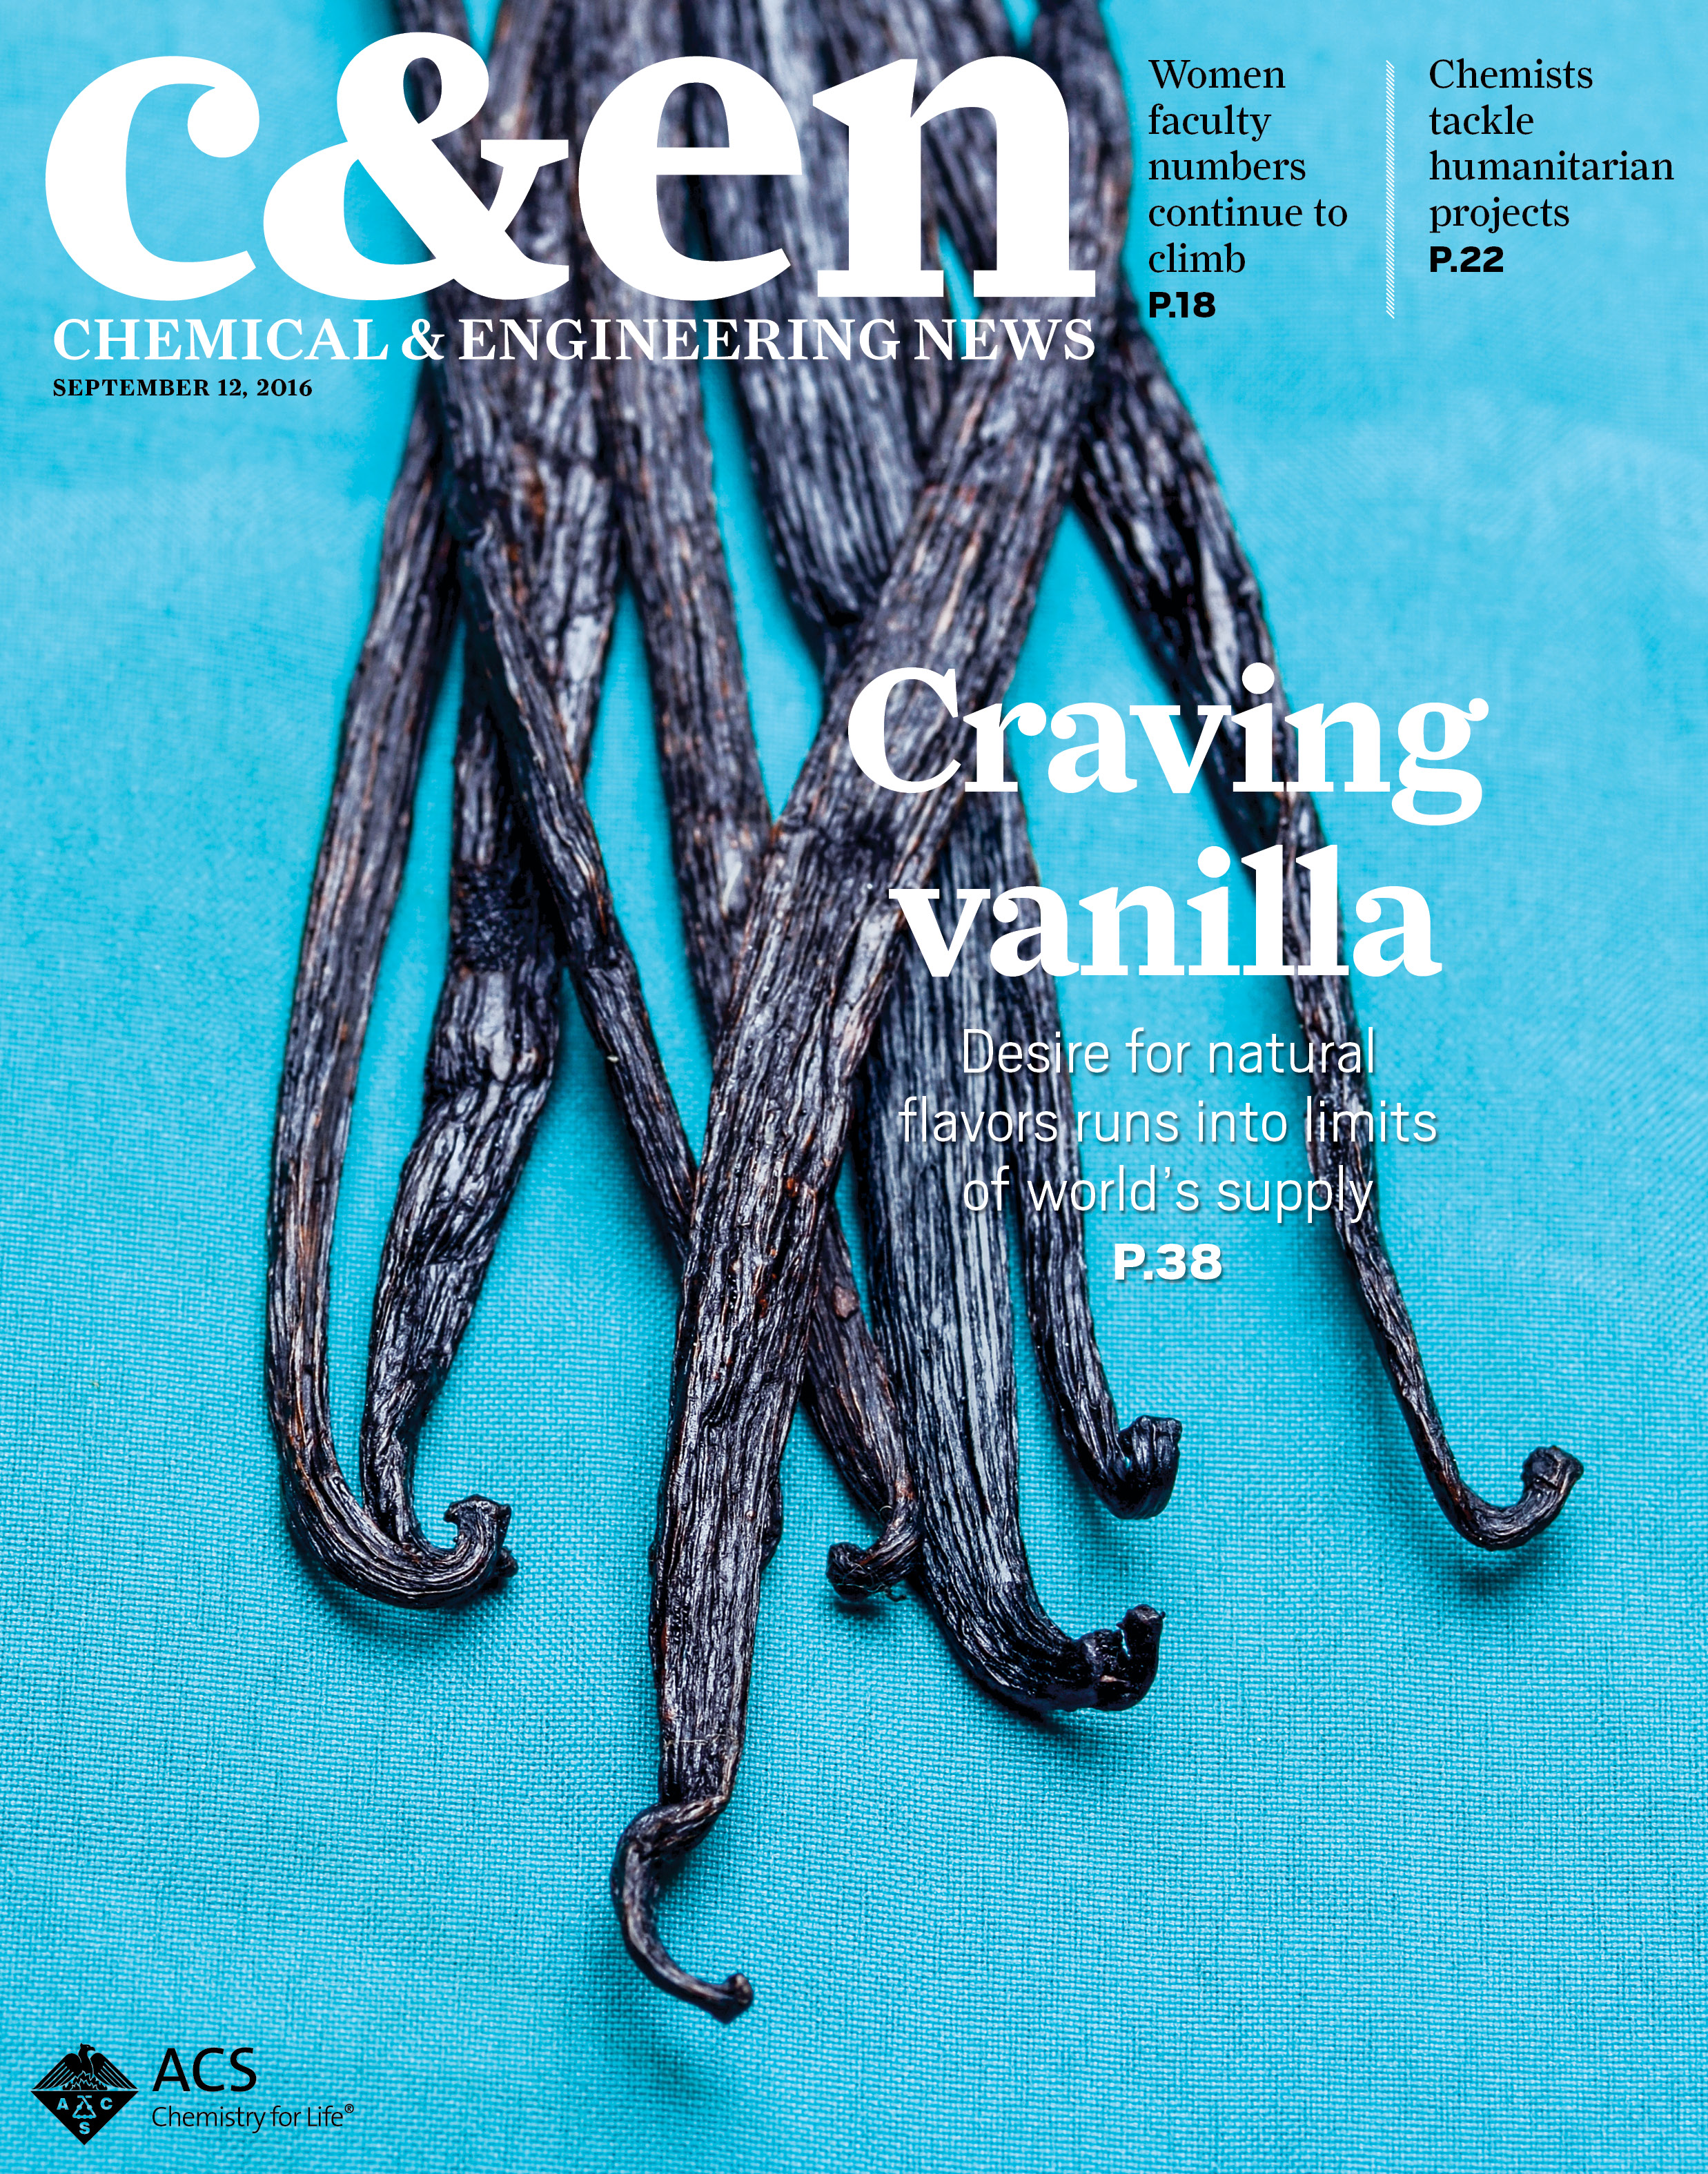 Meeting demand for 'natural' vanilla calls for creativity